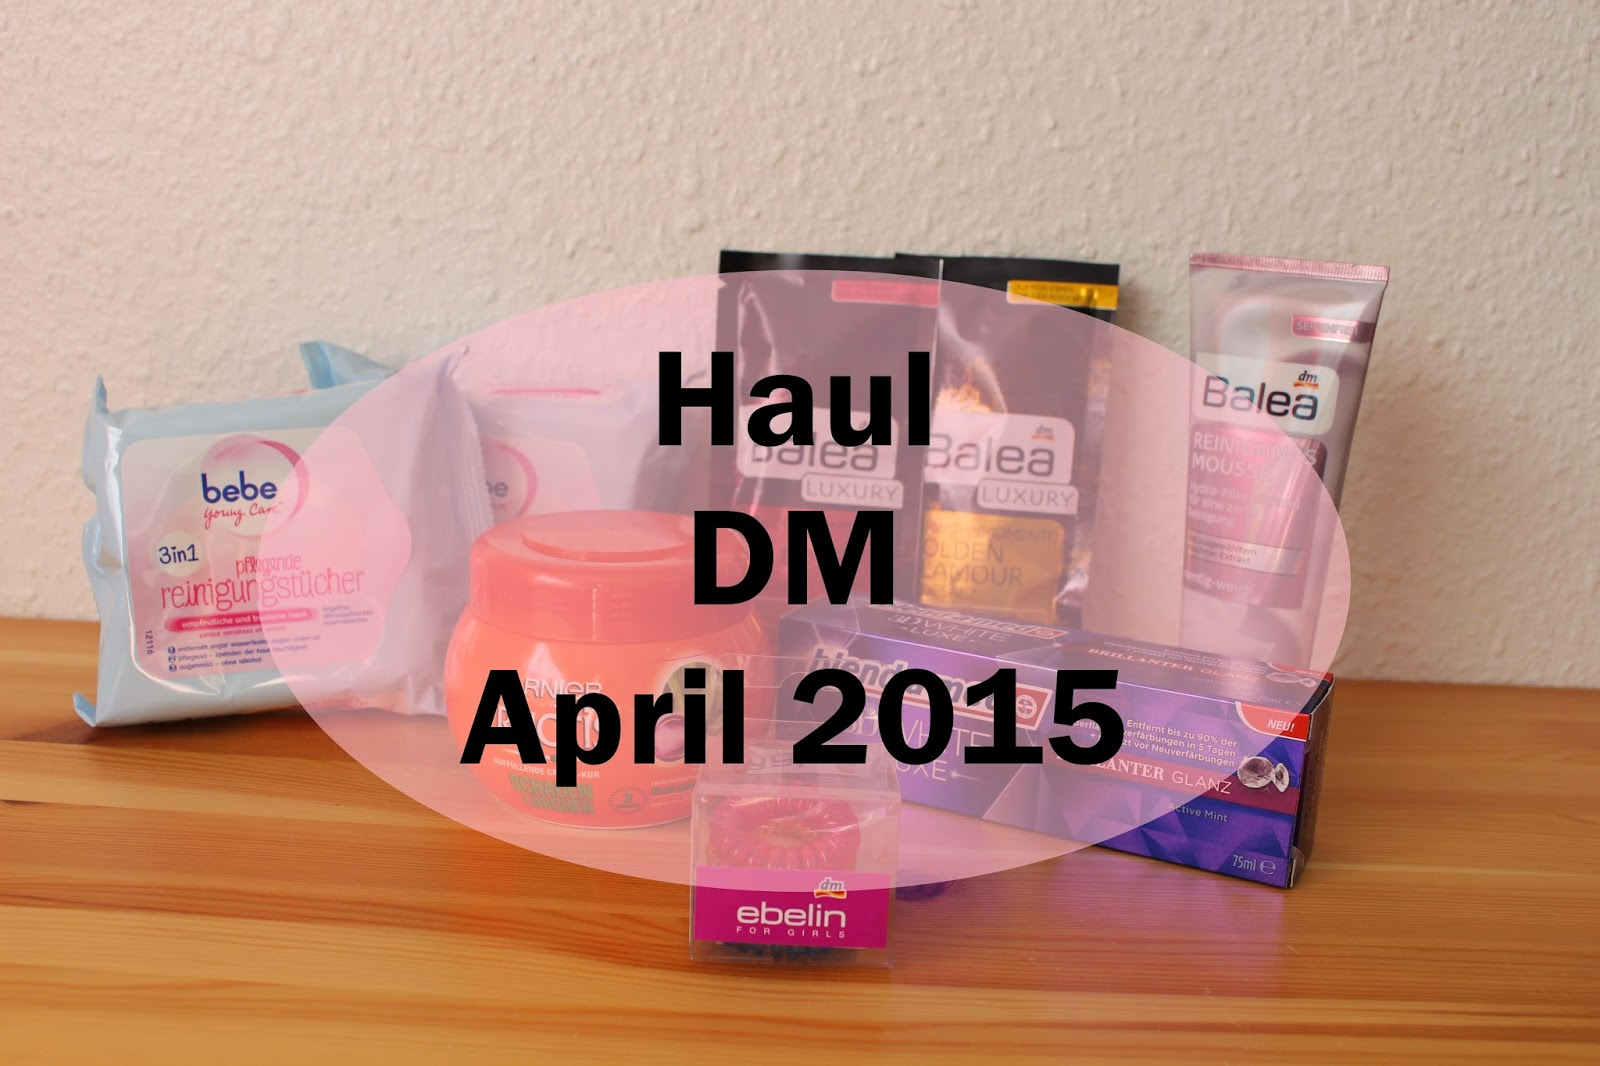 DM Haul April 2015